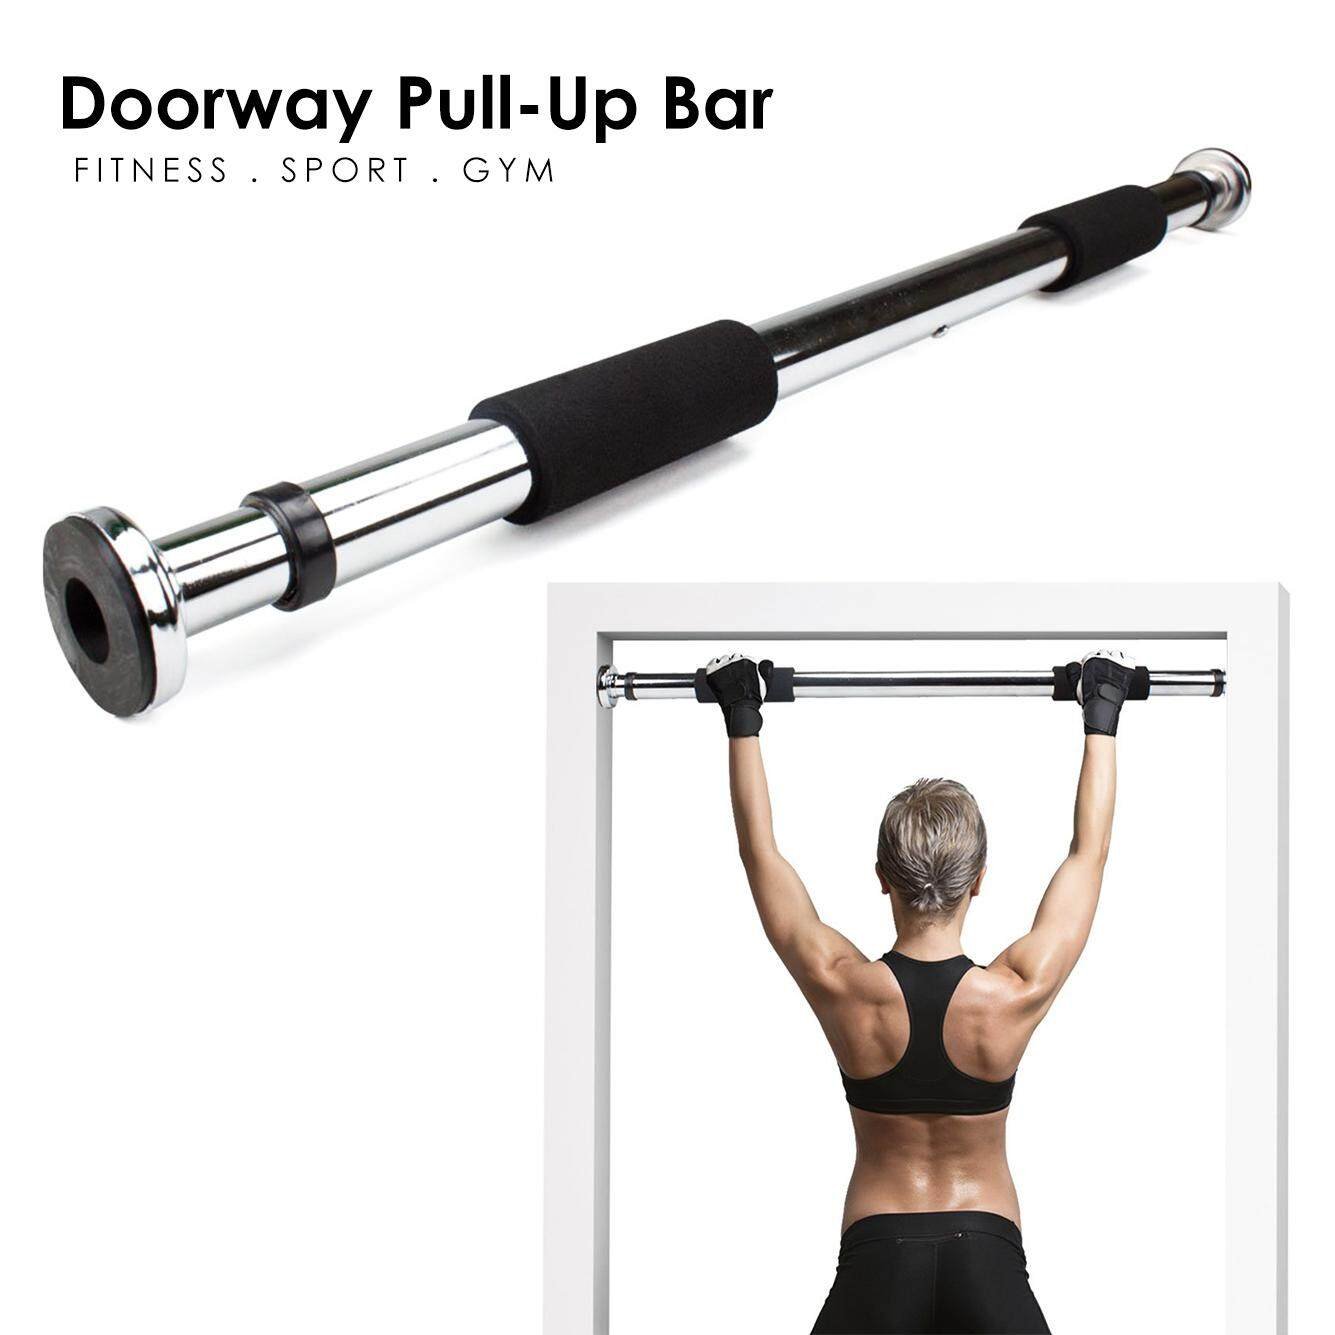 2 PCS PUSH UP BARS STAND GRIP For HOME FITNESS EXTREME EXERCISE NON-SLIP FROM UK